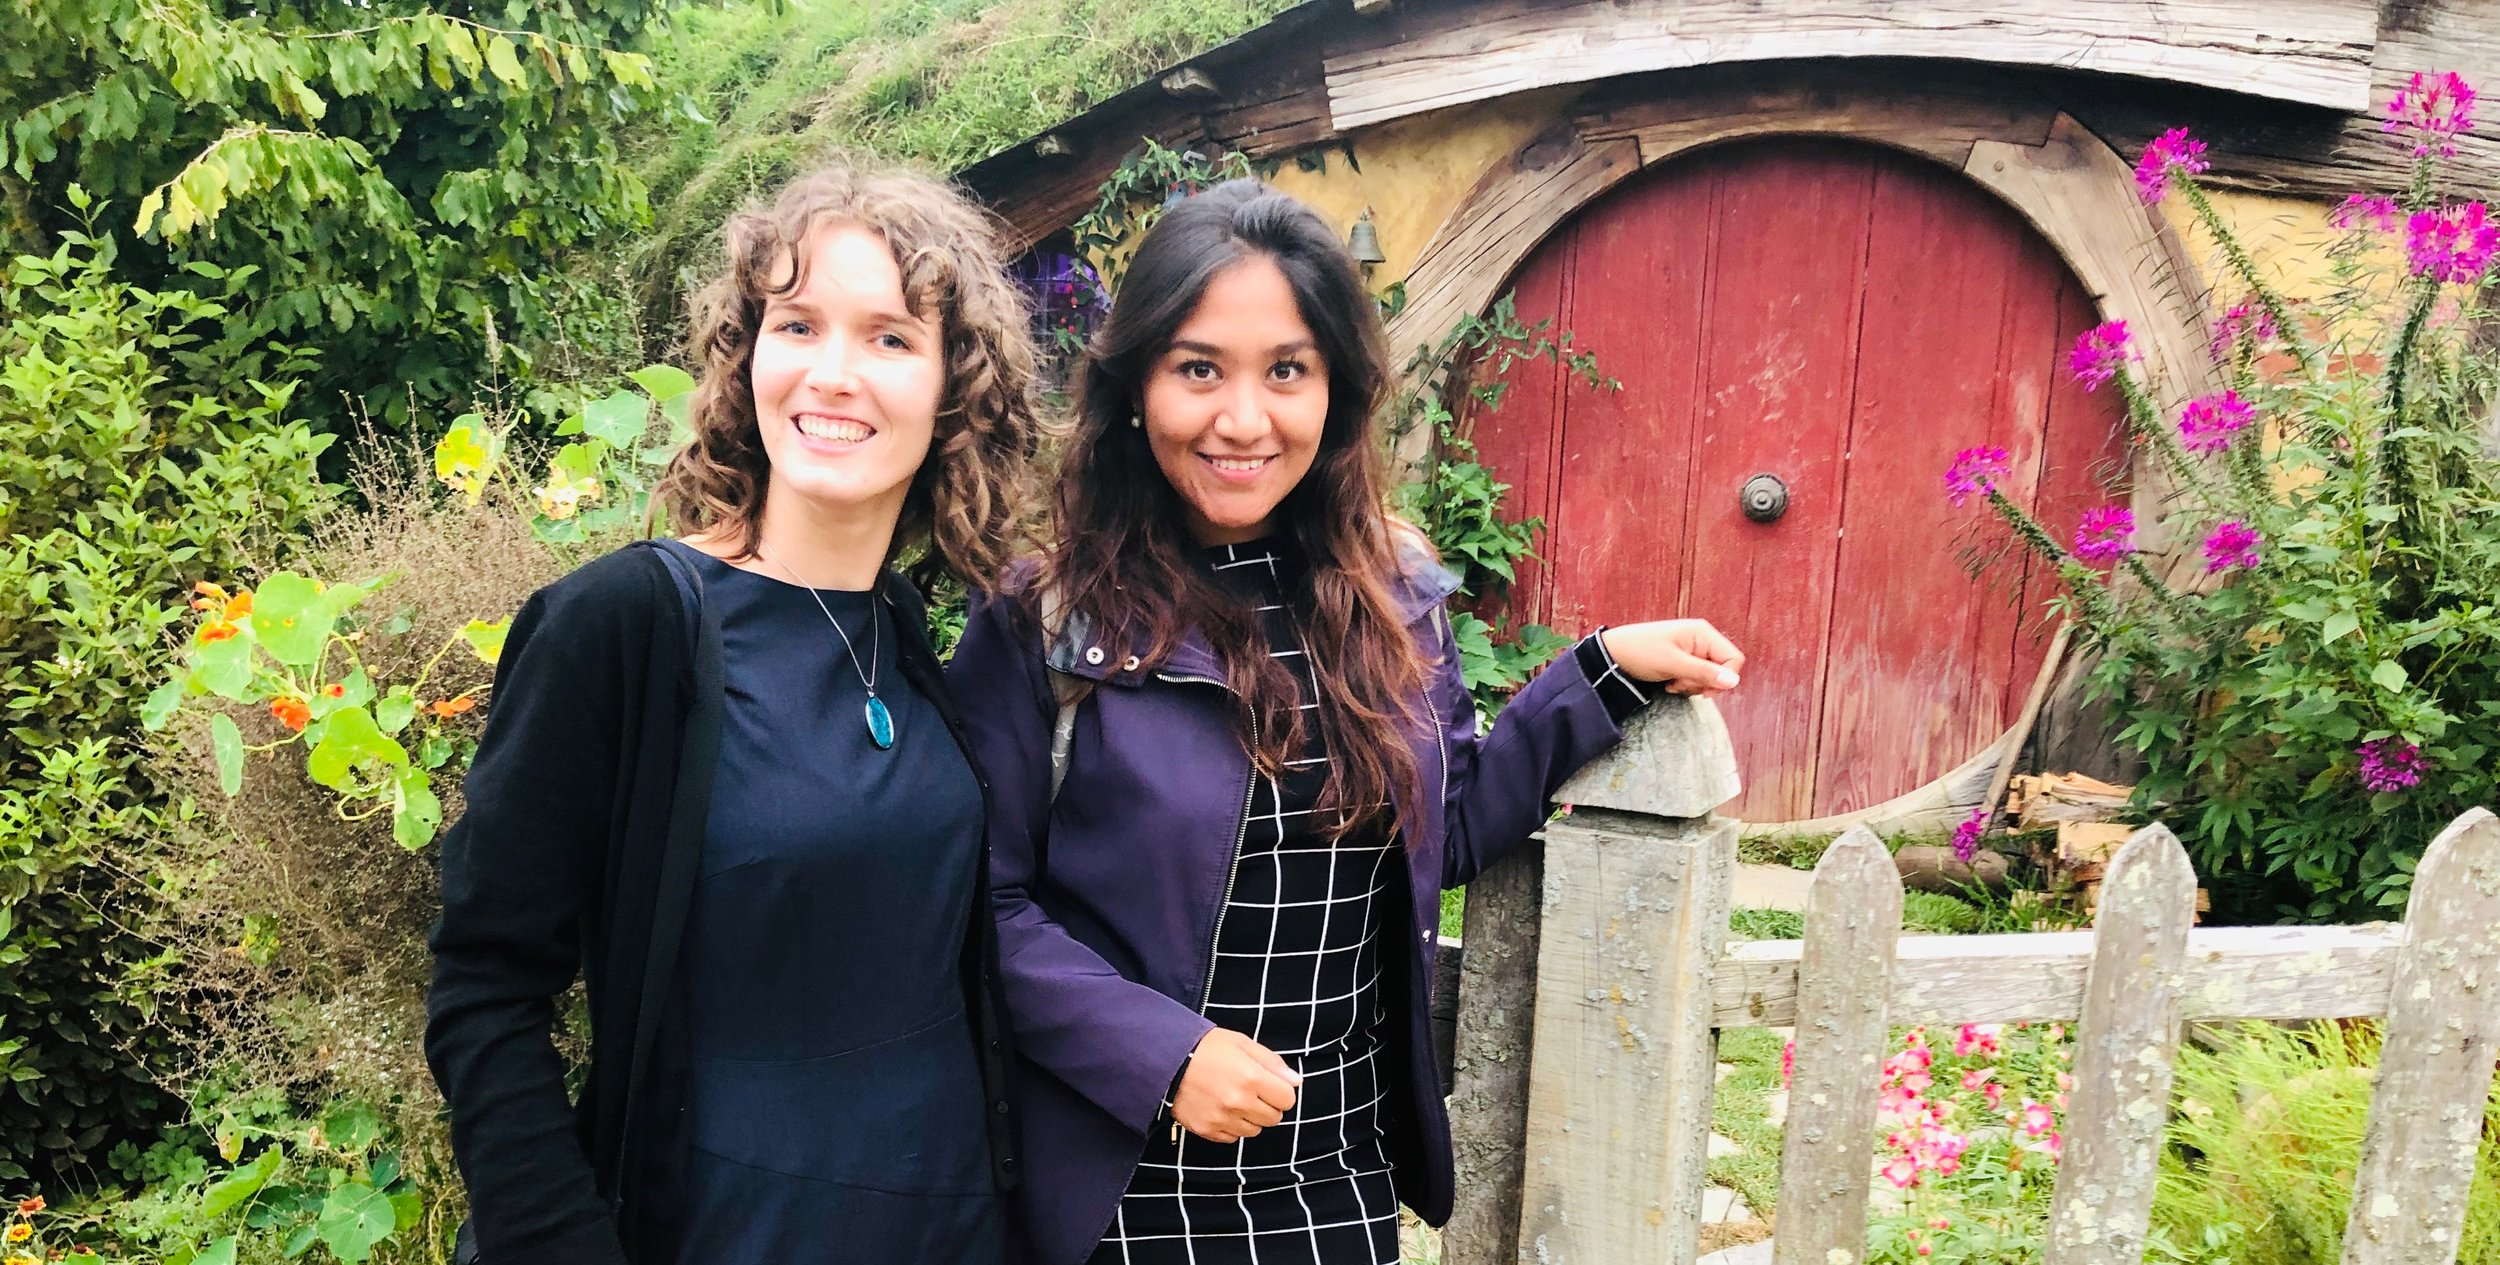 Angelique and Carol enjoying the Field Trip Day at Hobbiton during the Polar and Alpine Microbiology Conference in New Zealand